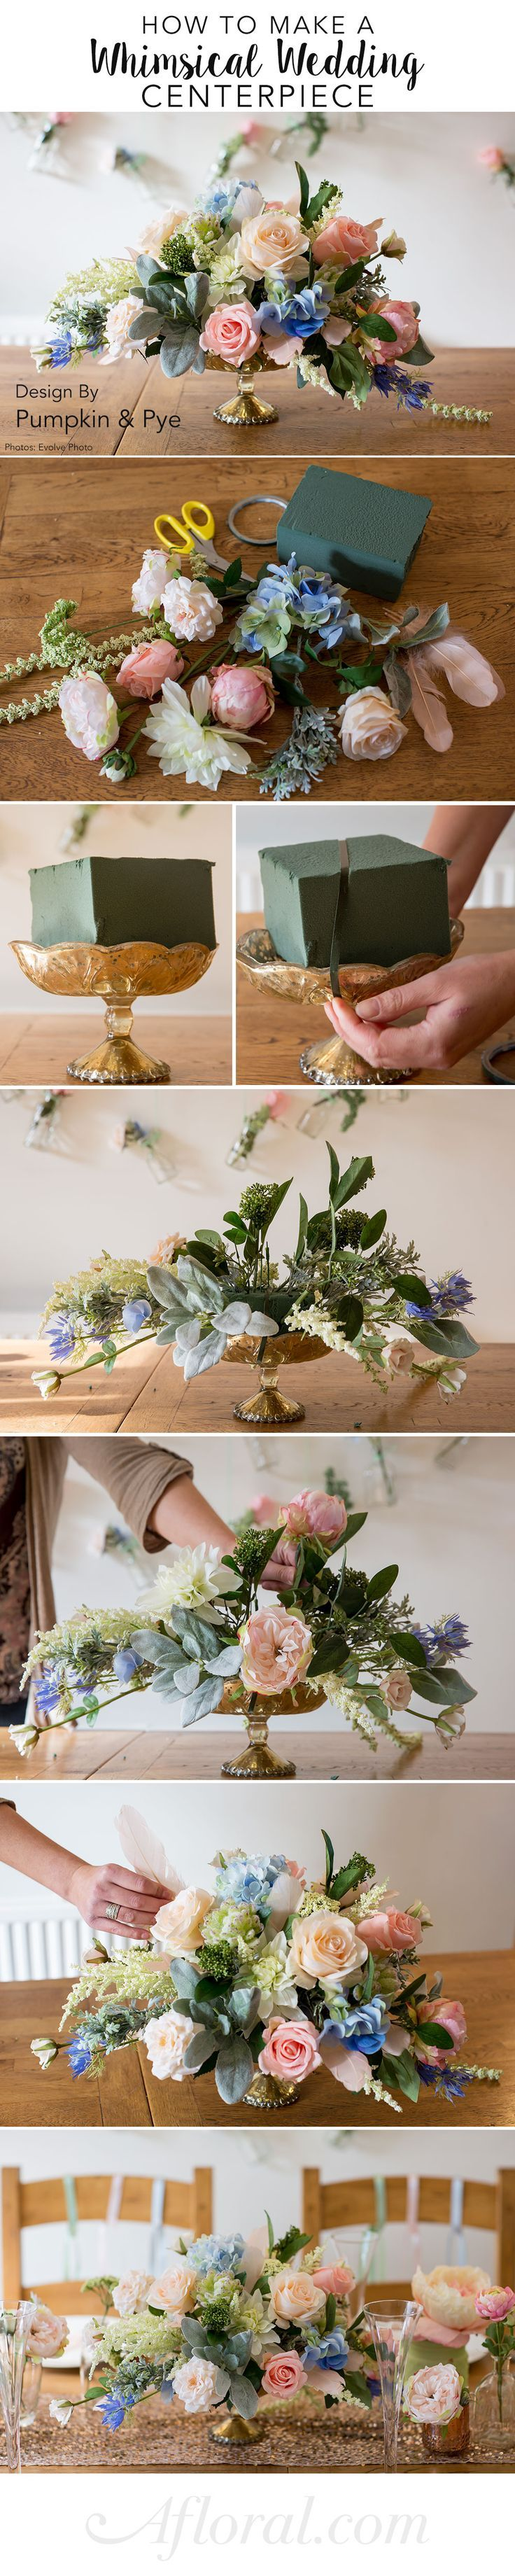 27 Best Decoraiuni Images On Pinterest Floral Arrangements